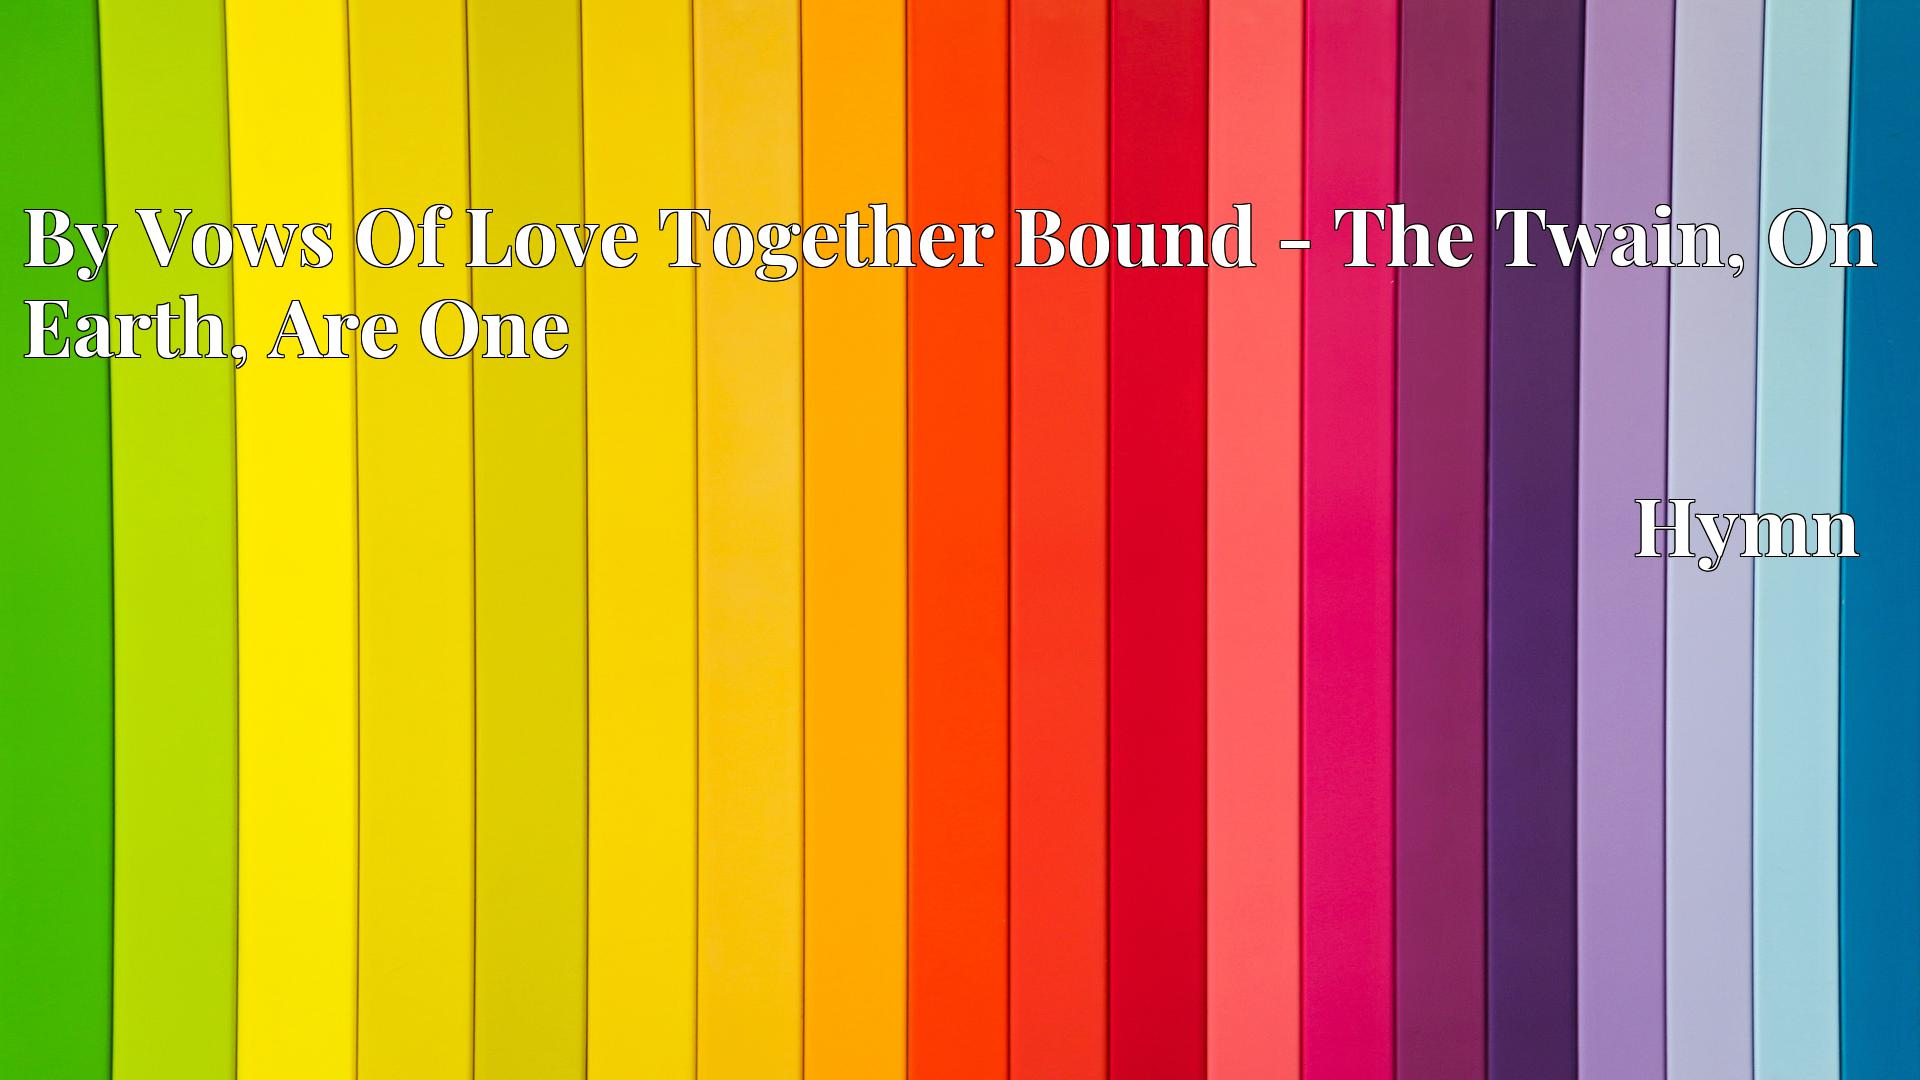 By Vows Of Love Together Bound - The Twain, On Earth, Are One Hymn